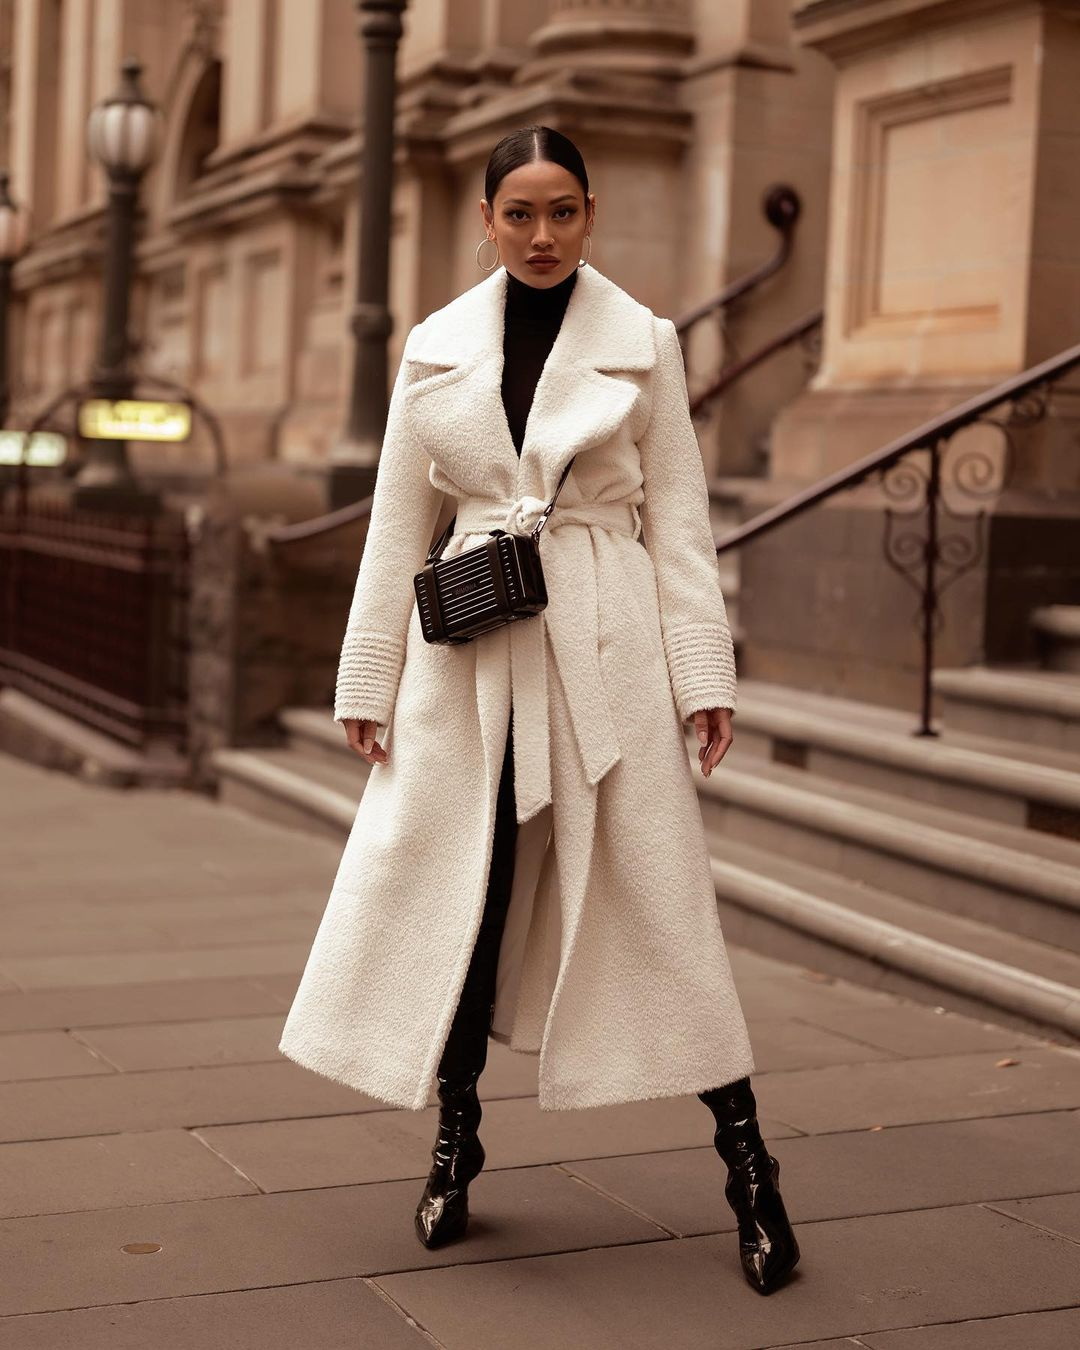 Robes outfit ideas for women